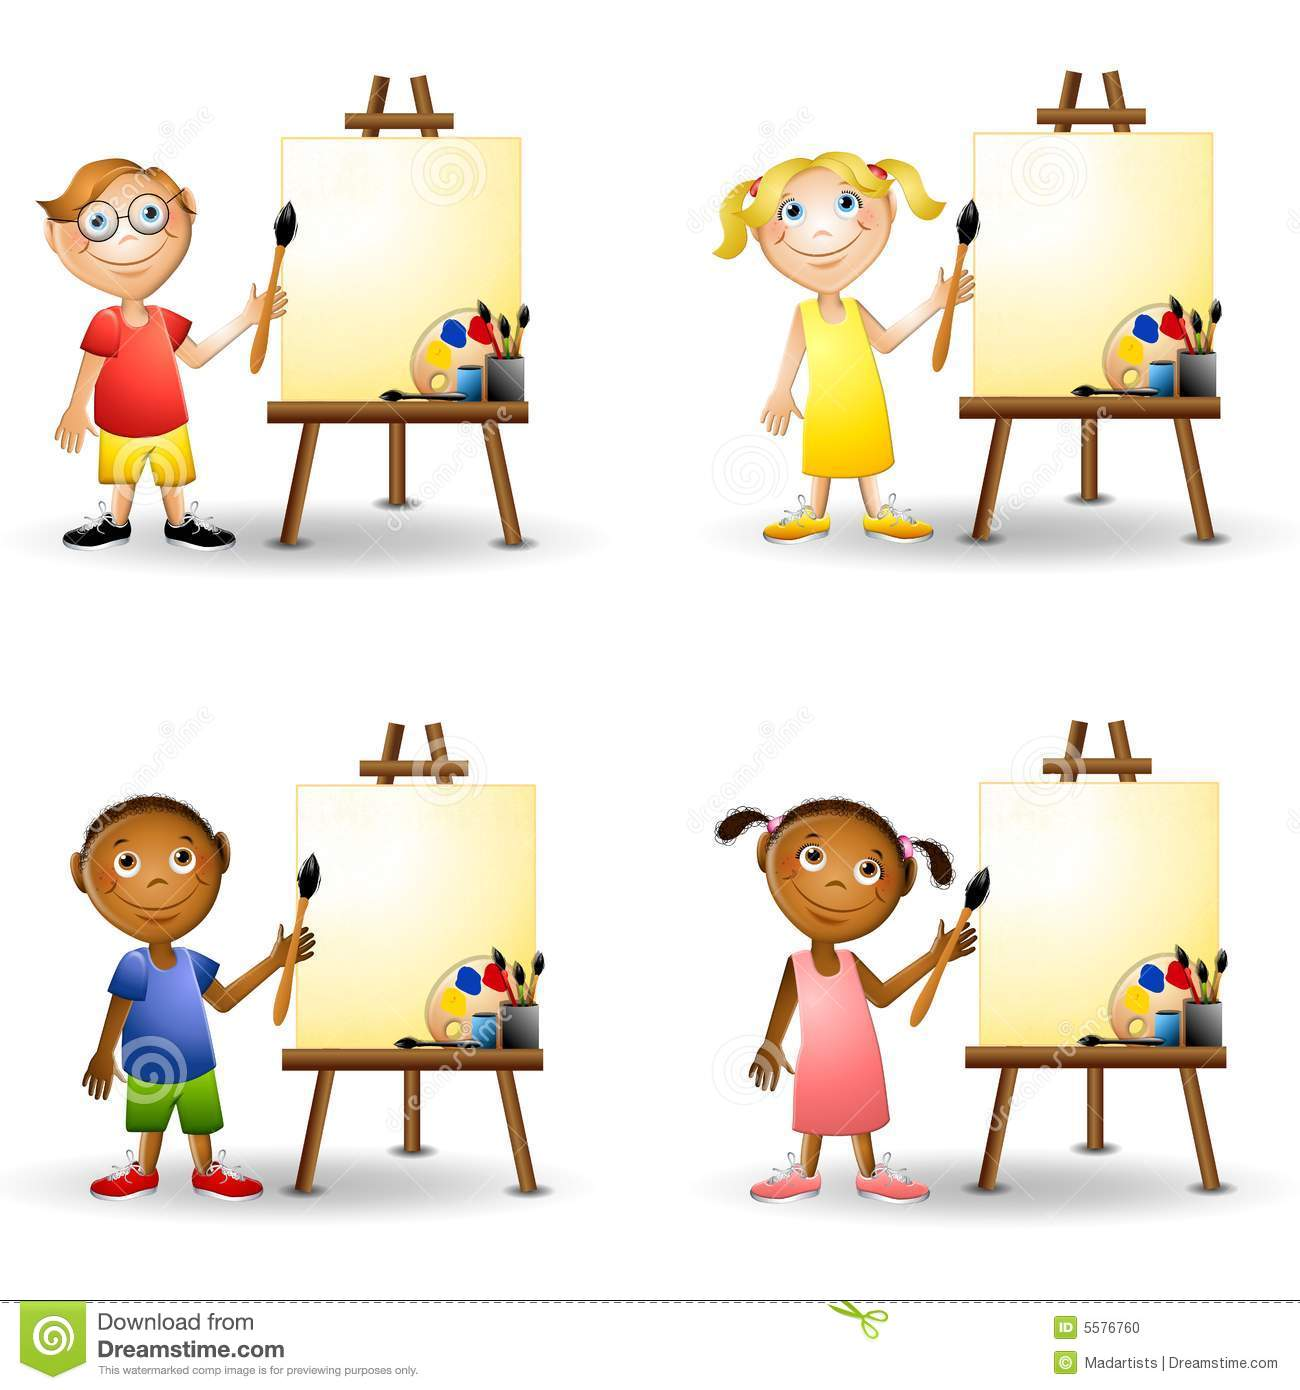 art kids painting easels - Kids Painting Images